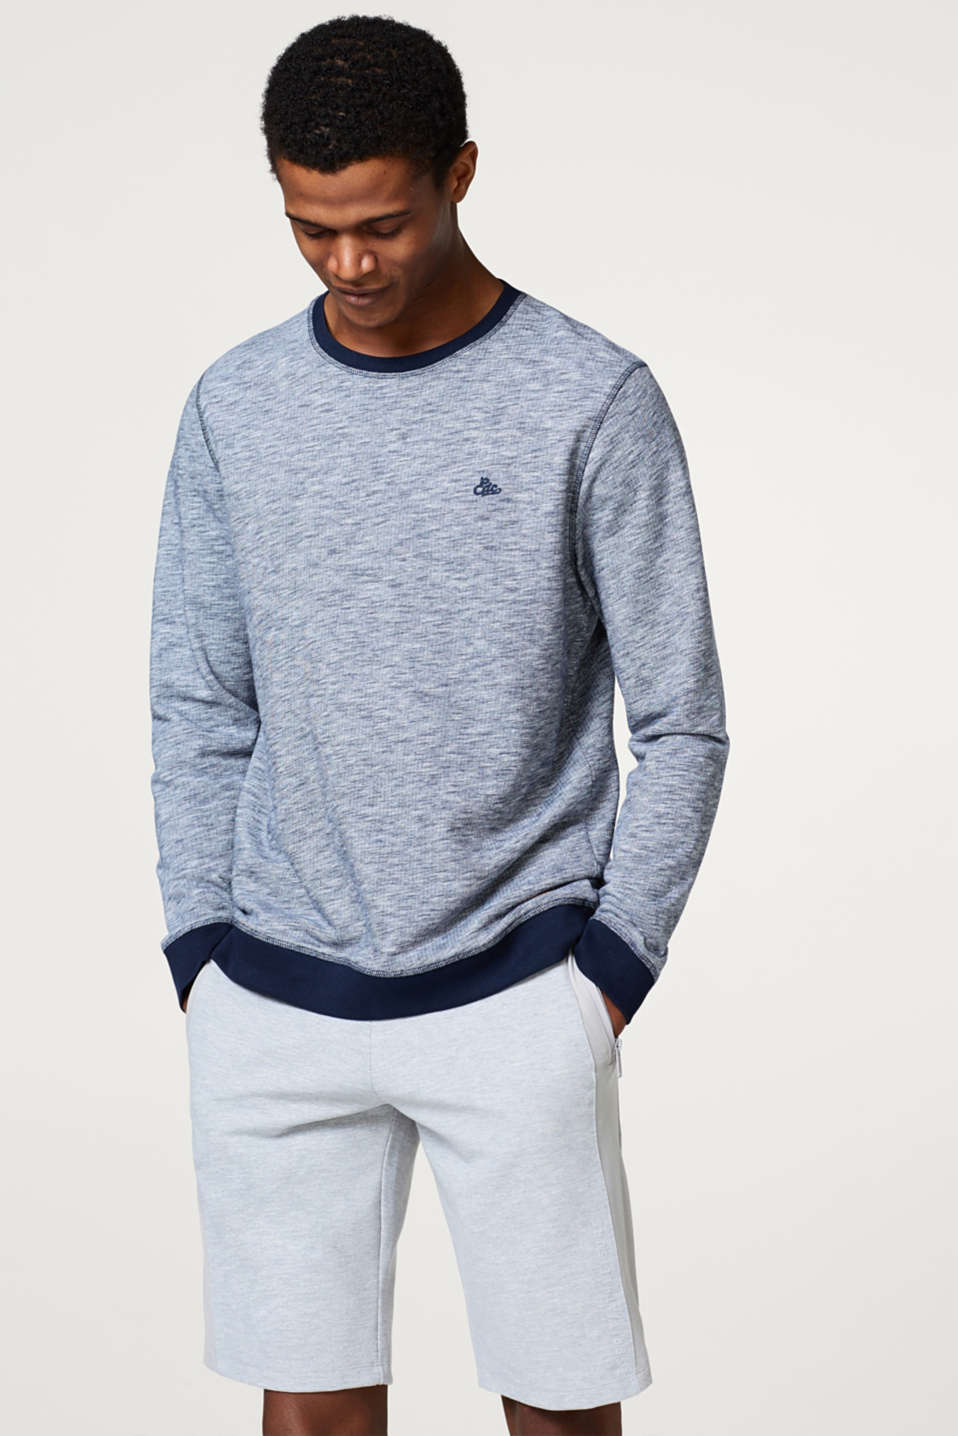 edc - Sweat-shirt en coton mélangé